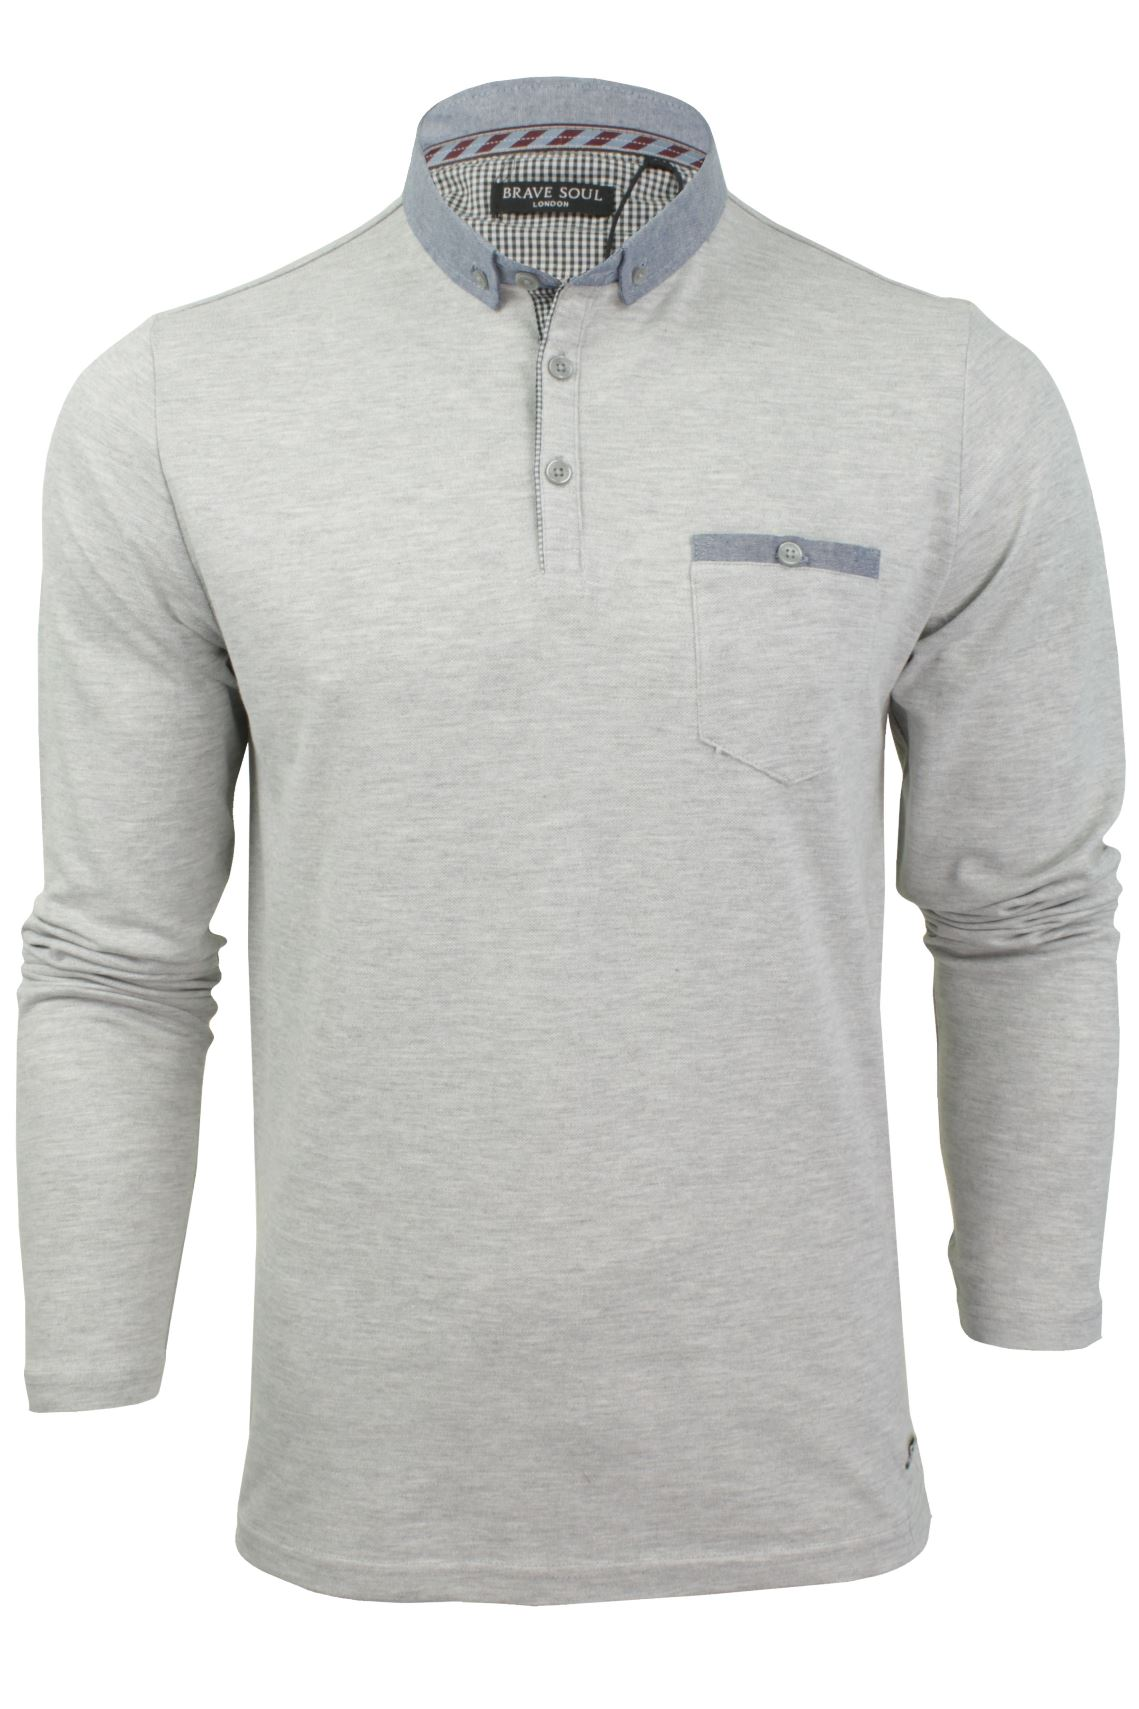 Mens pique polo t shirt by brave soul 39 hera 39 long sleeved for Mens long sleeve pique polo shirts